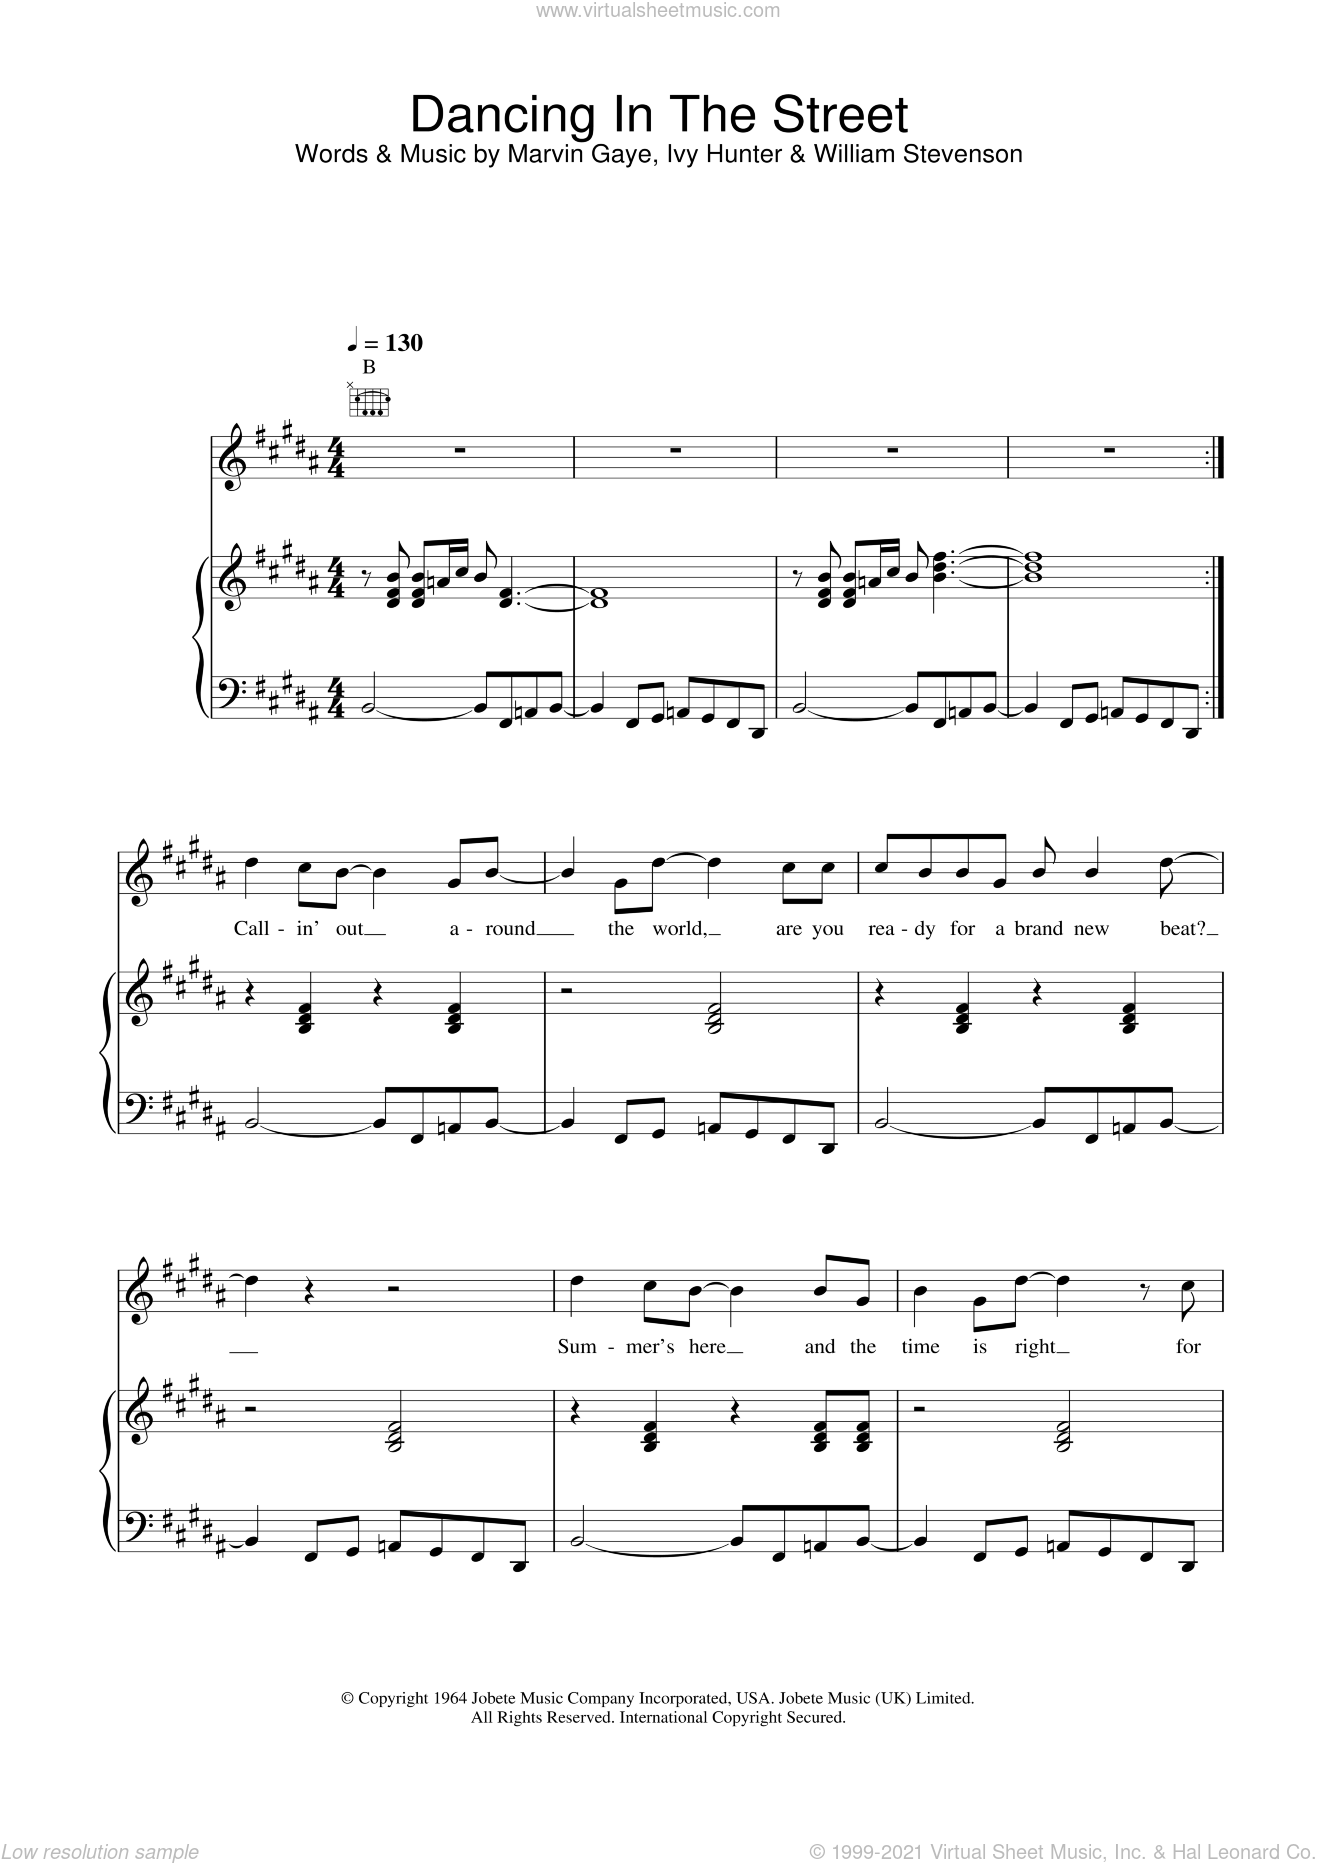 Dancing In The Street sheet music for voice, piano or guitar by David Bowie, Mick Jagger, Ivy Hunter, Marvin Gaye and William Stevenson, intermediate skill level